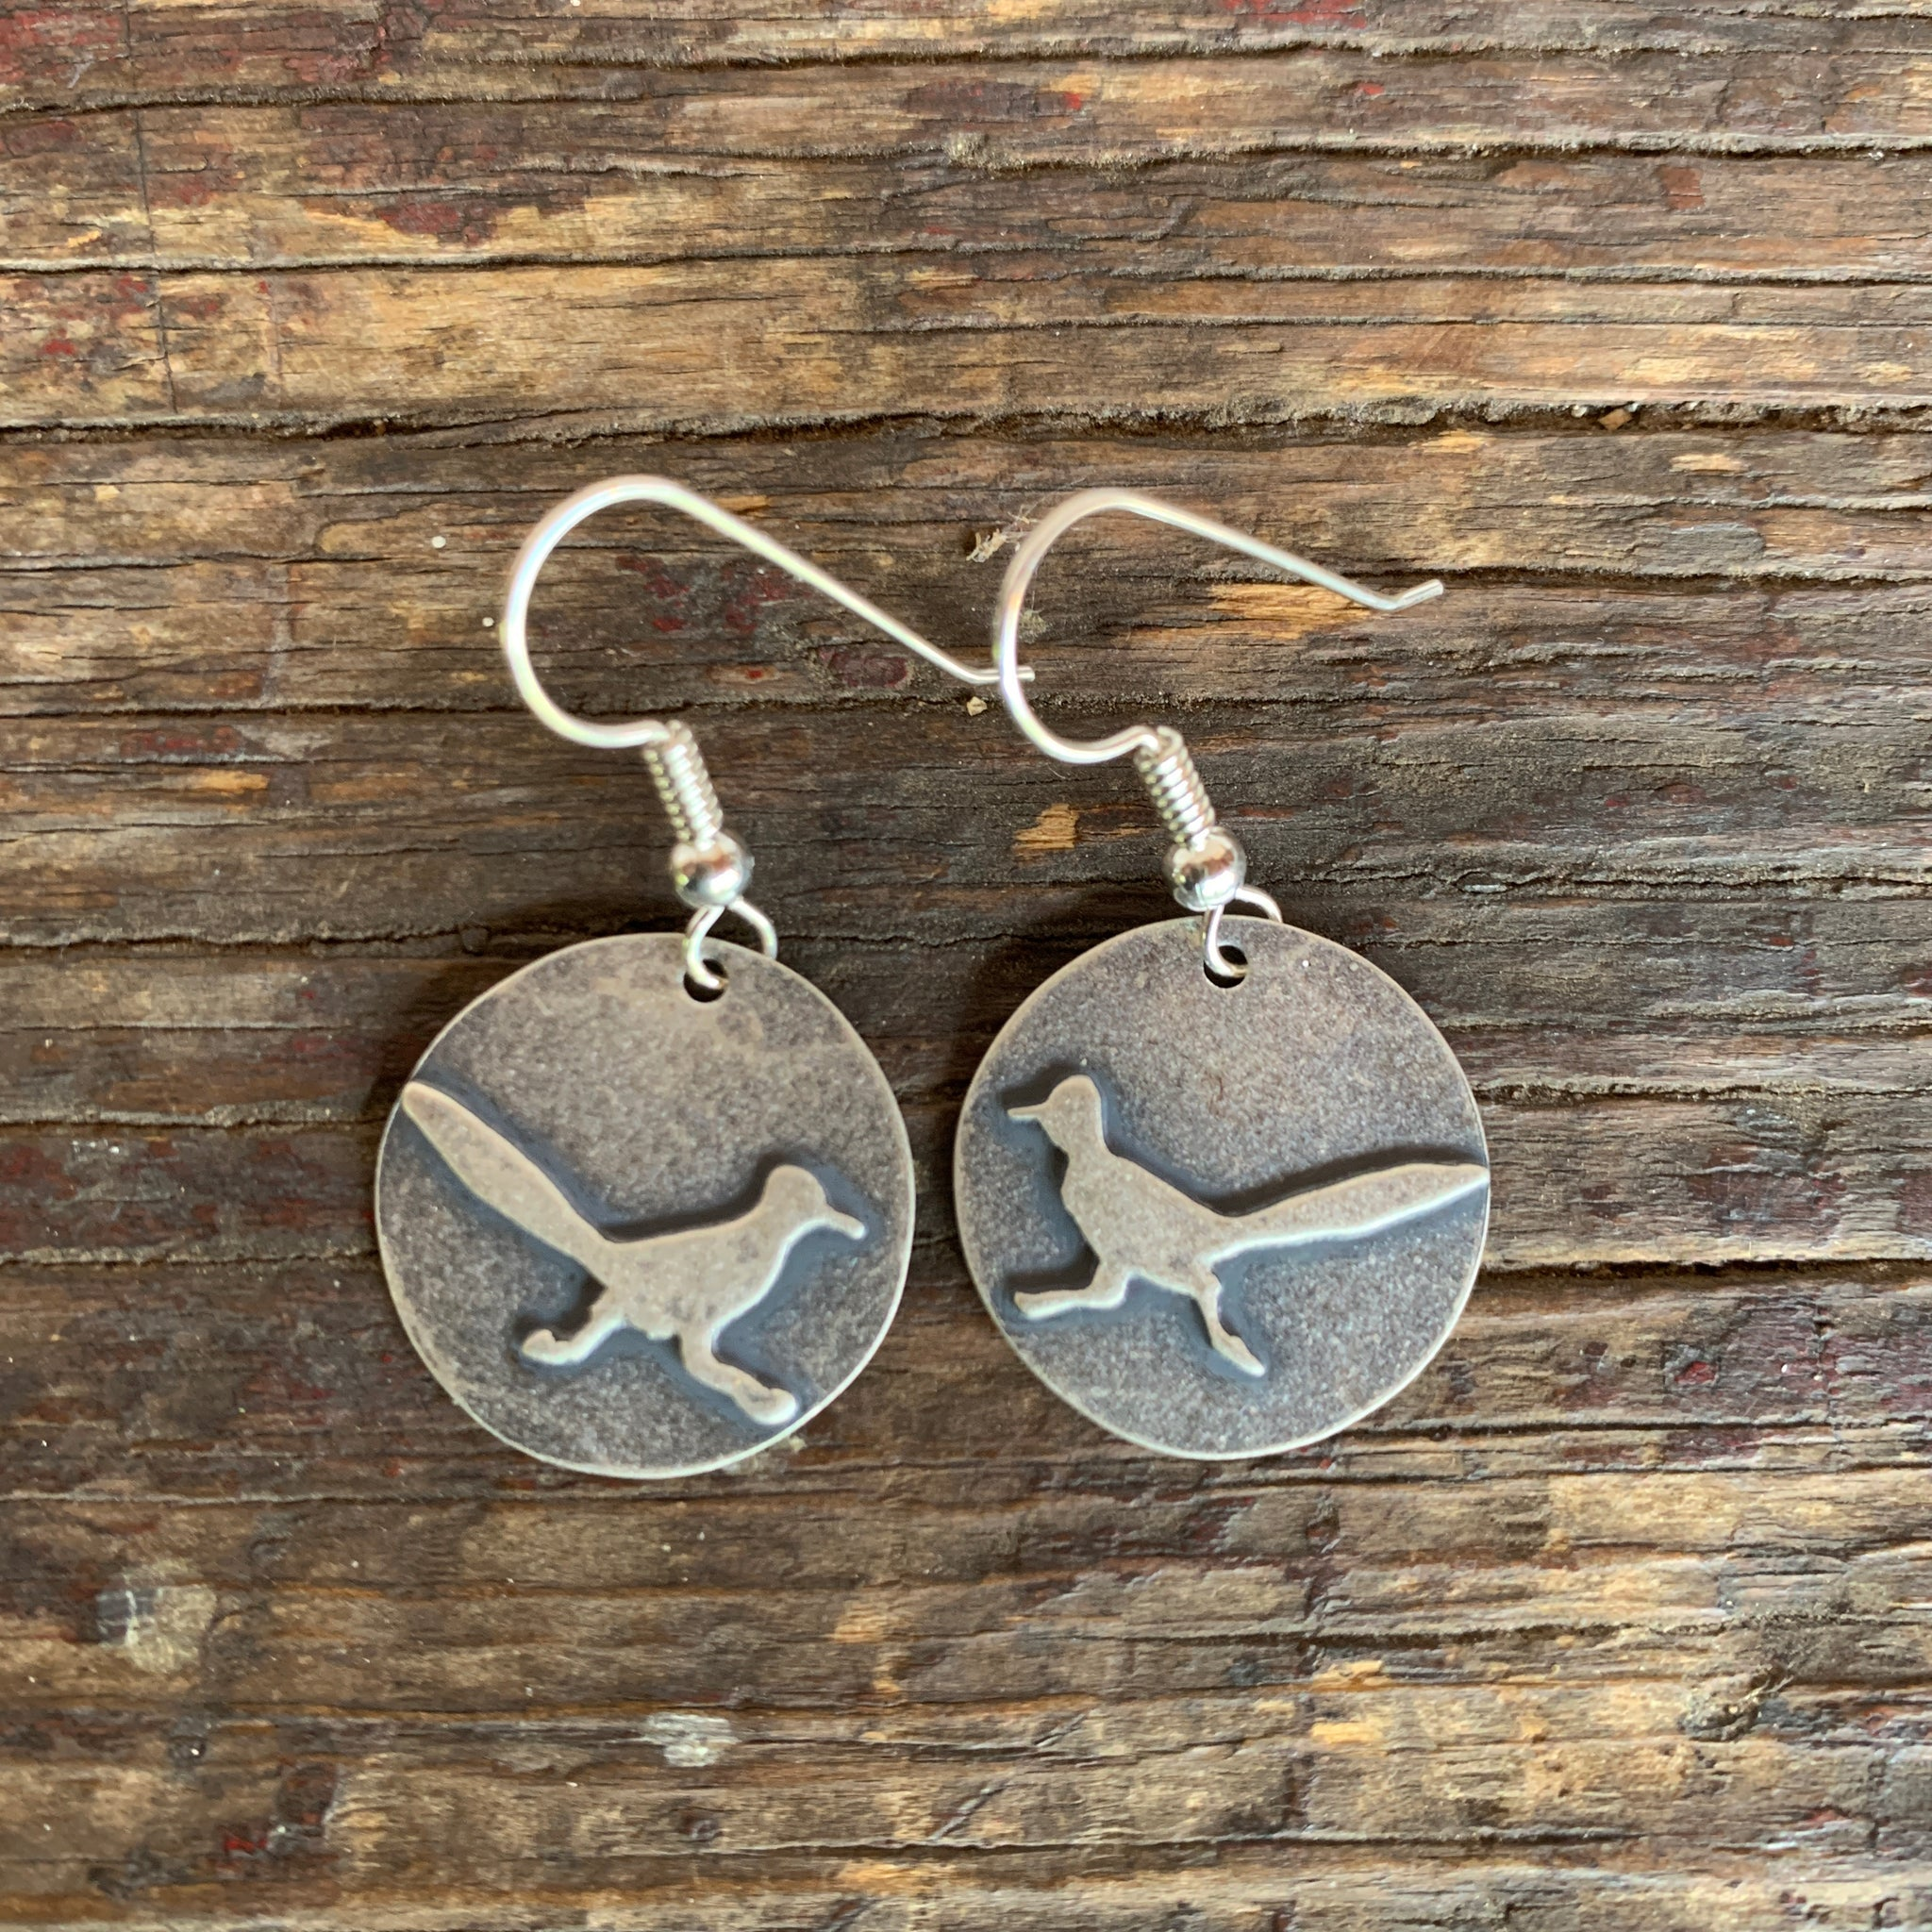 Roadrunner charm Earrings Alisha Williams